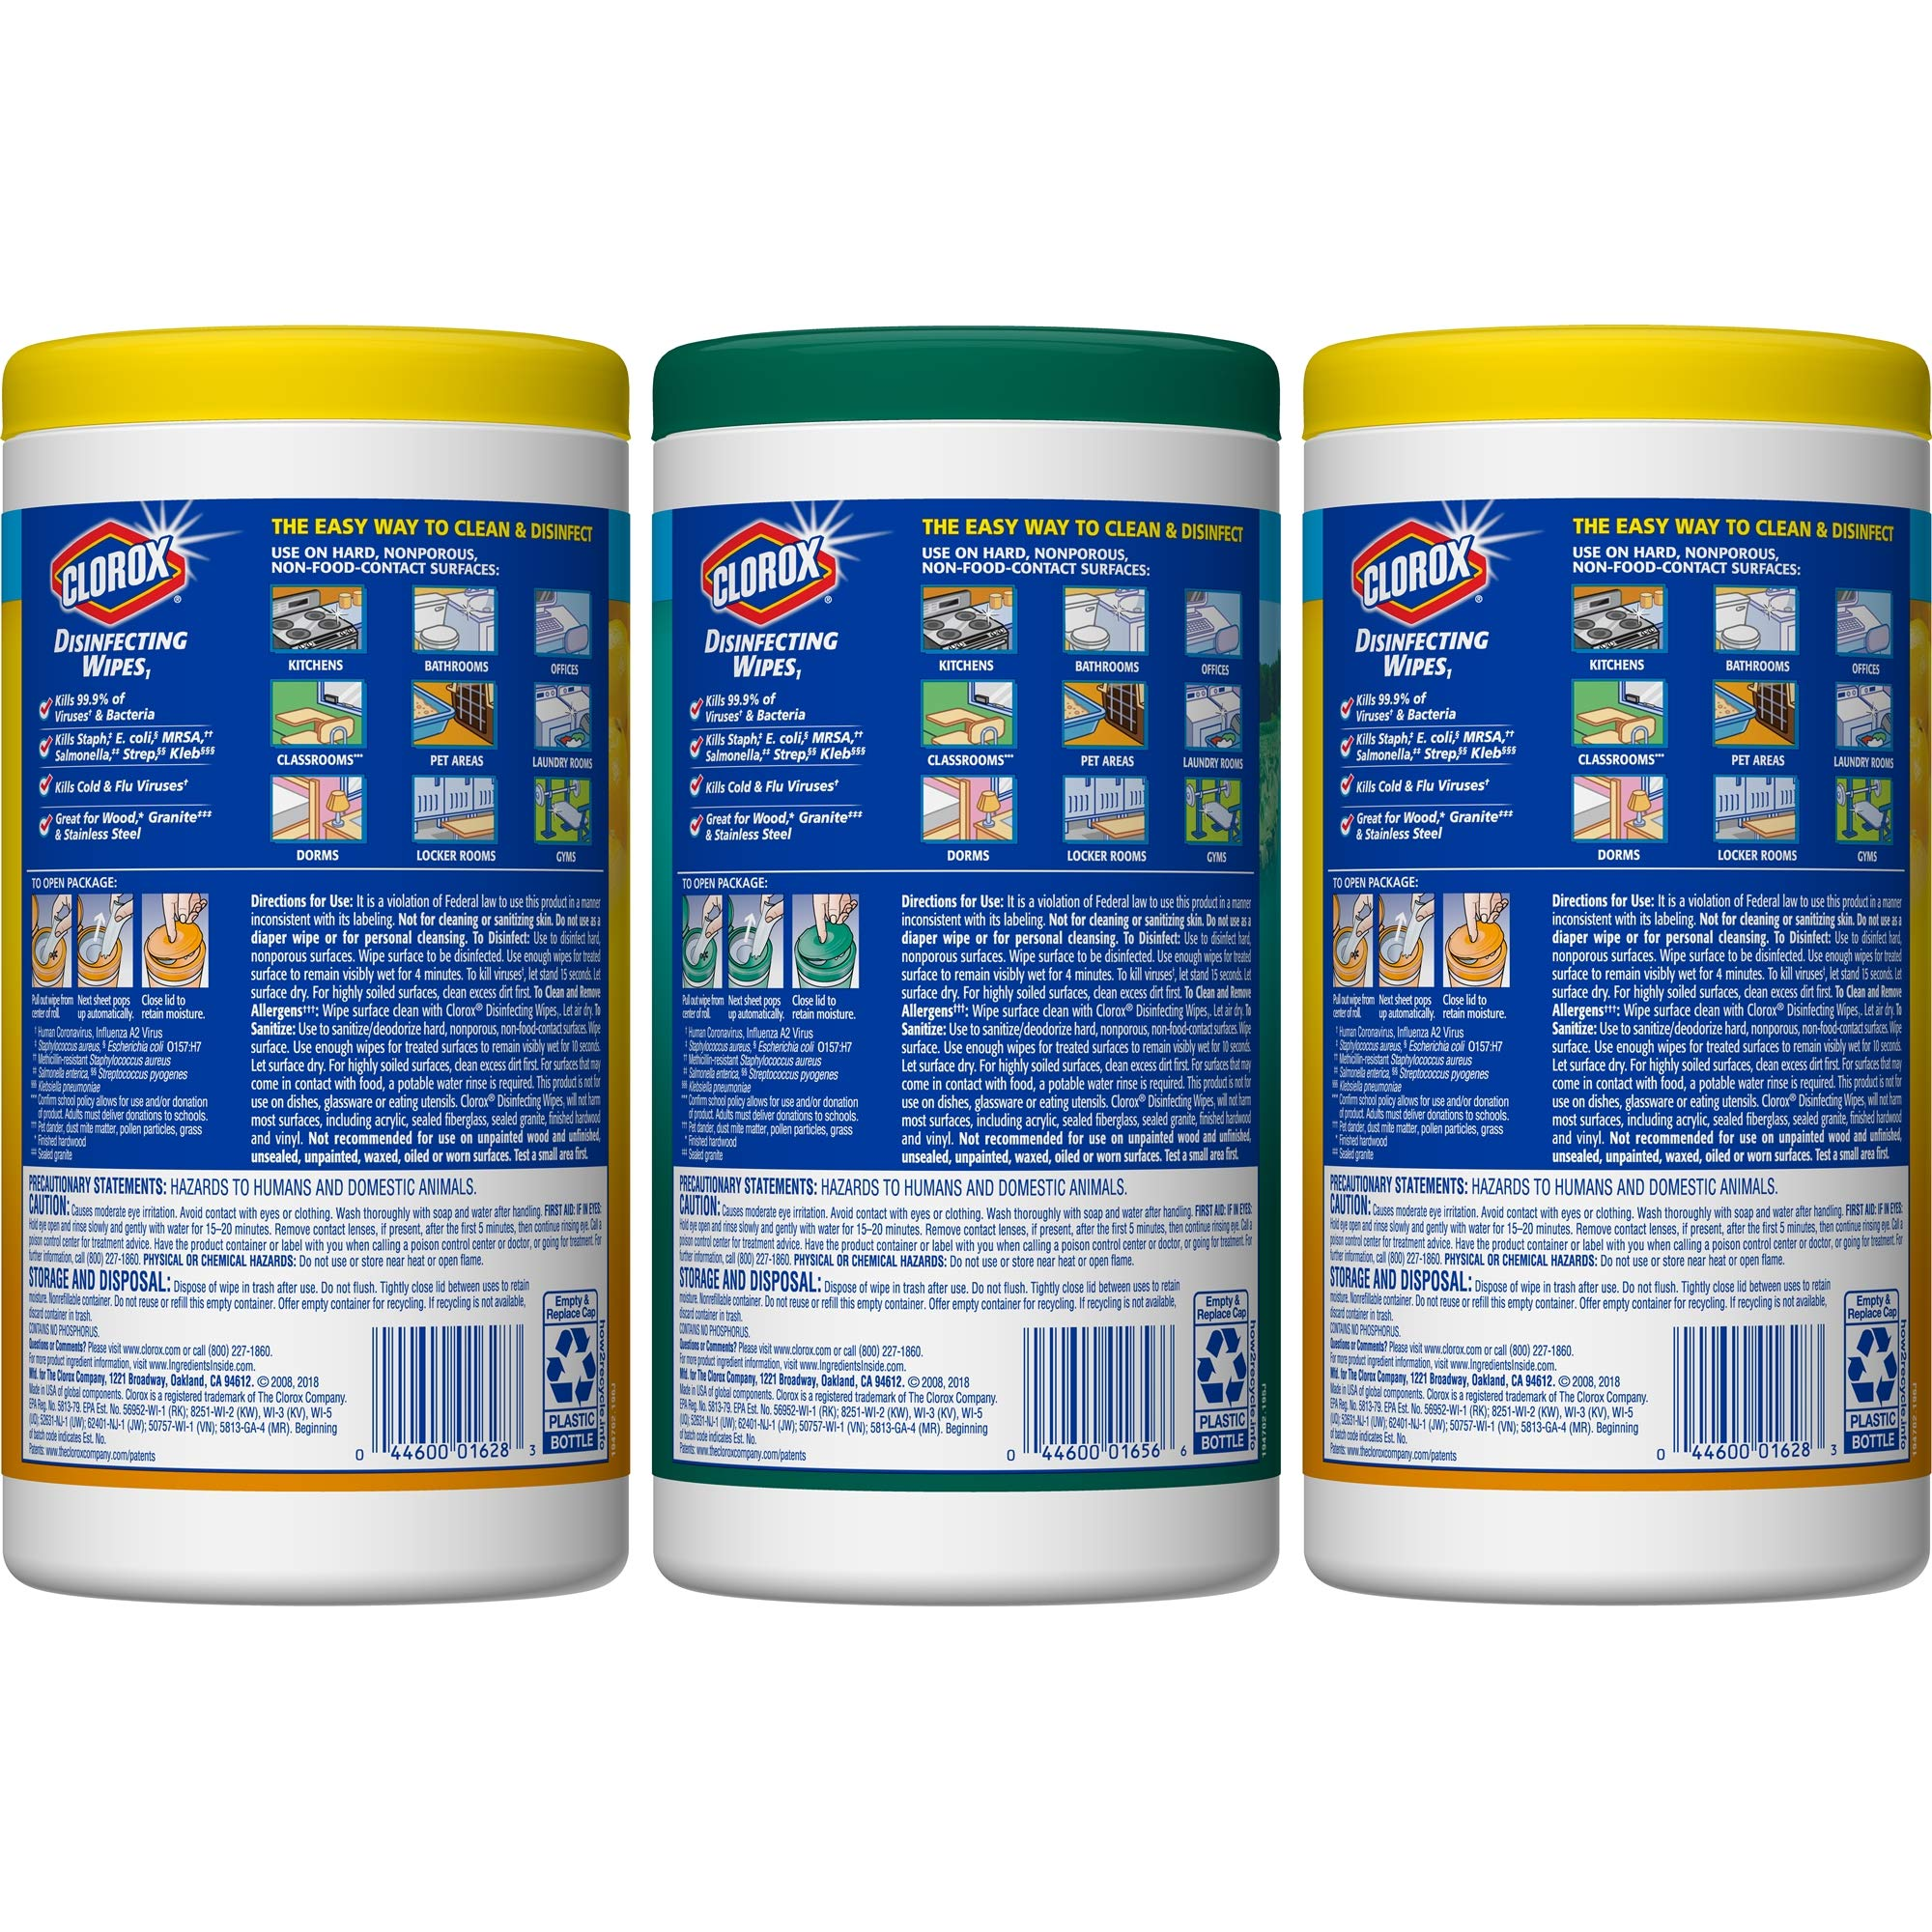 Clorox Disinfecting Wipes Value Pack, Bleach Free Cleaning Wipes - 75 Count Each (Pack of 3) (.5 Pack(225 Count)) by Clorox (Image #4)